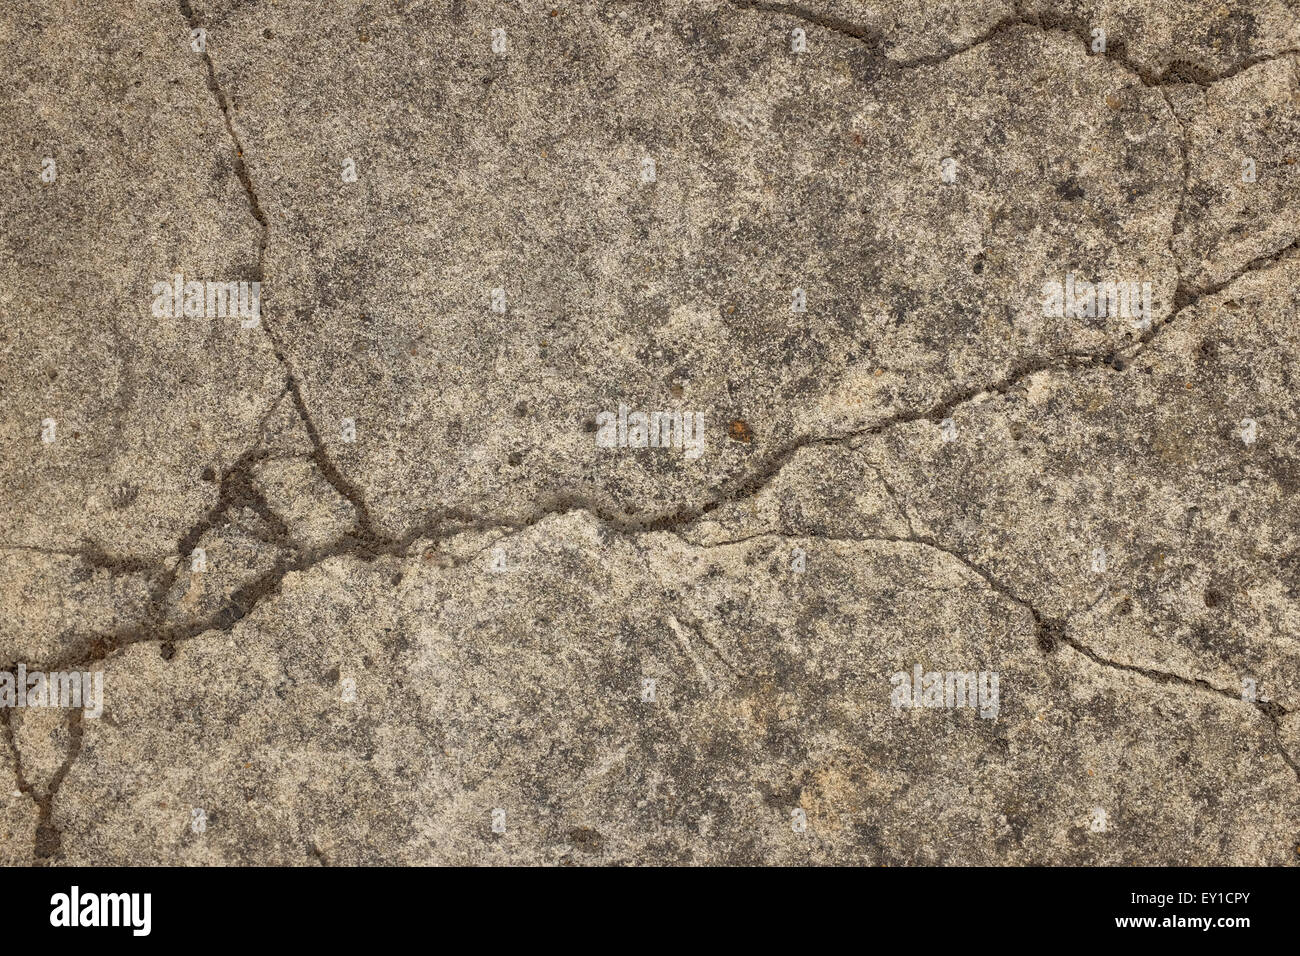 Cracked and weathered concrete surface as an abstract background texture - Stock Image